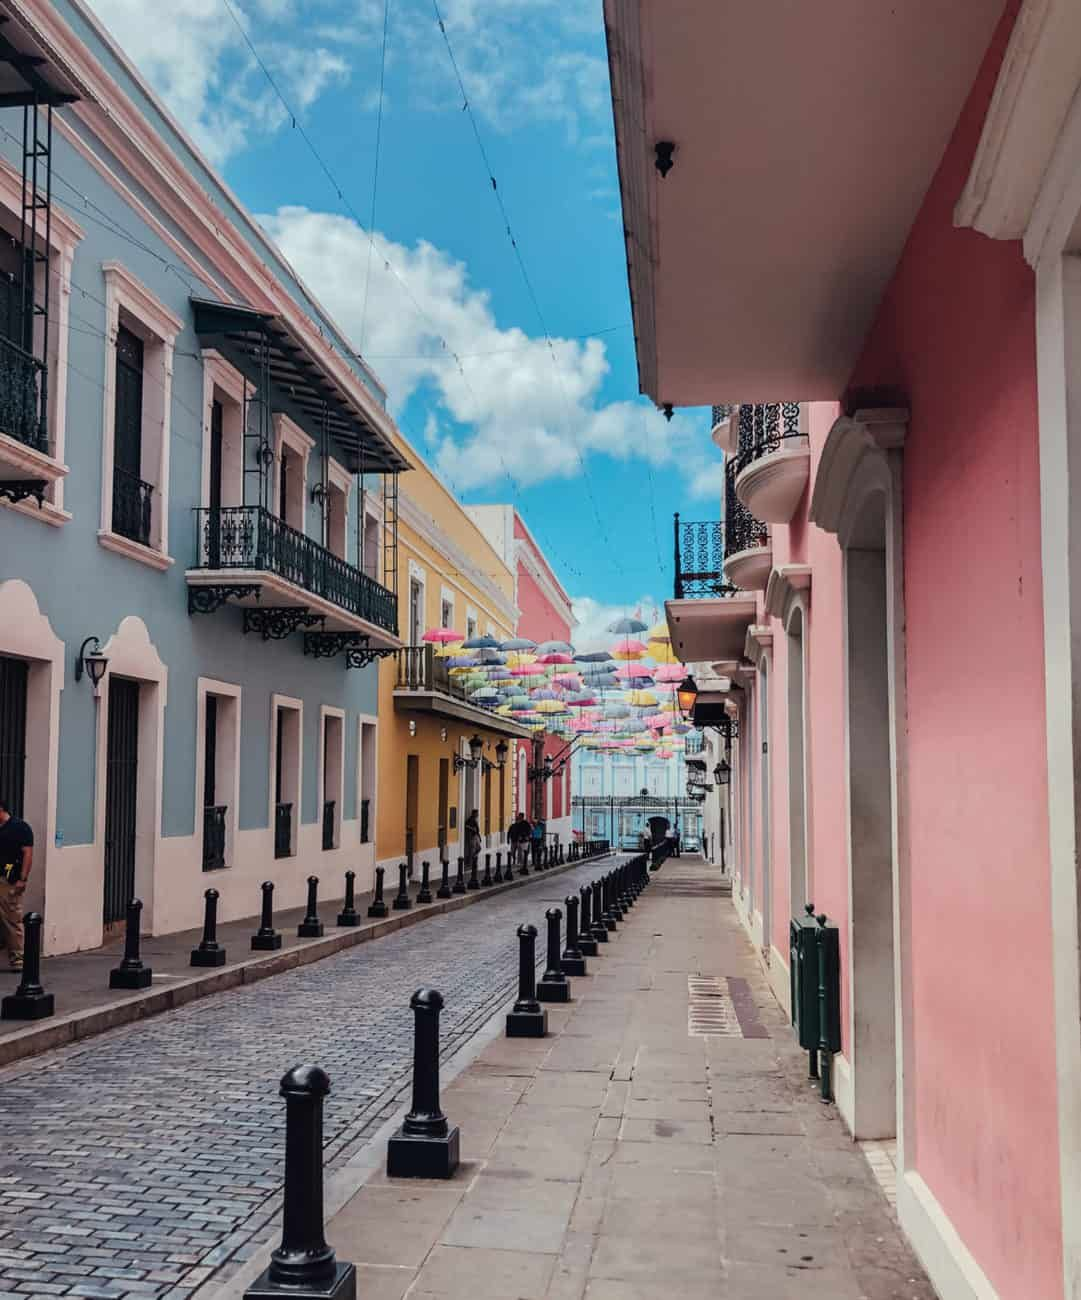 The Guide To The Most Instagrammable Places In San Juan Puerto Rico In 2020 Instagrammable Places Puerto Rico Trip San Juan Puerto Rico